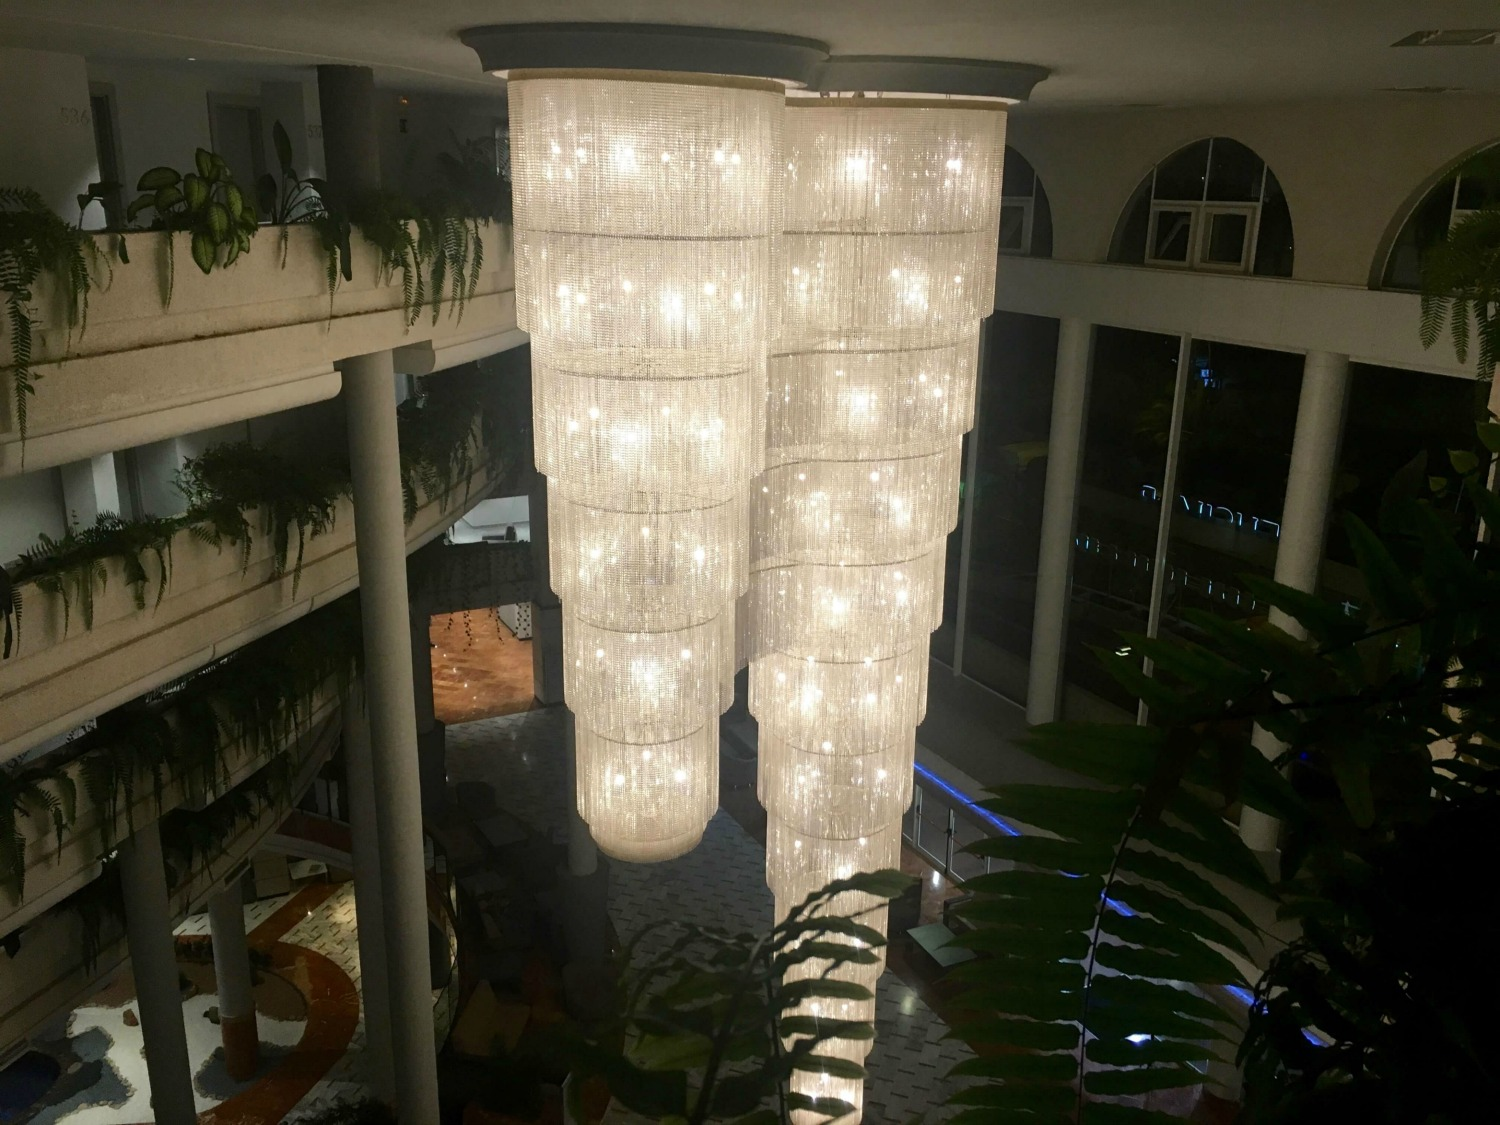 tenerife-los-cristianos-hotel-interior-lighting